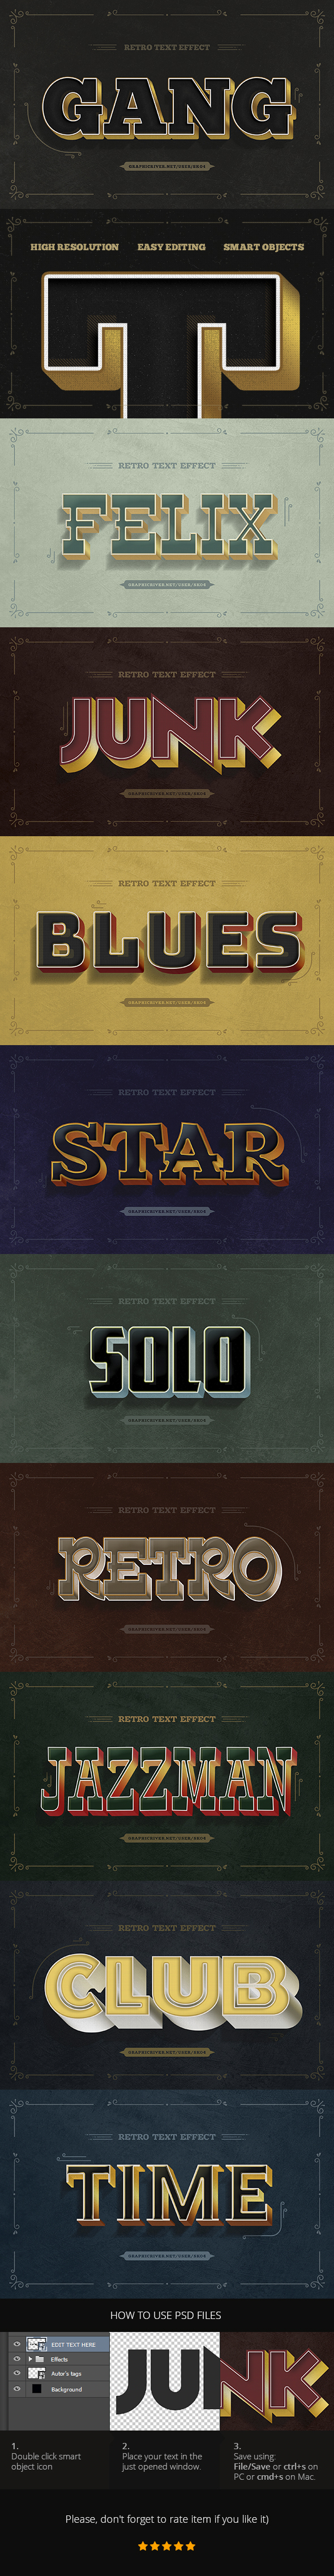 10 Retro Text Effects - PSD - Text Effects Actions